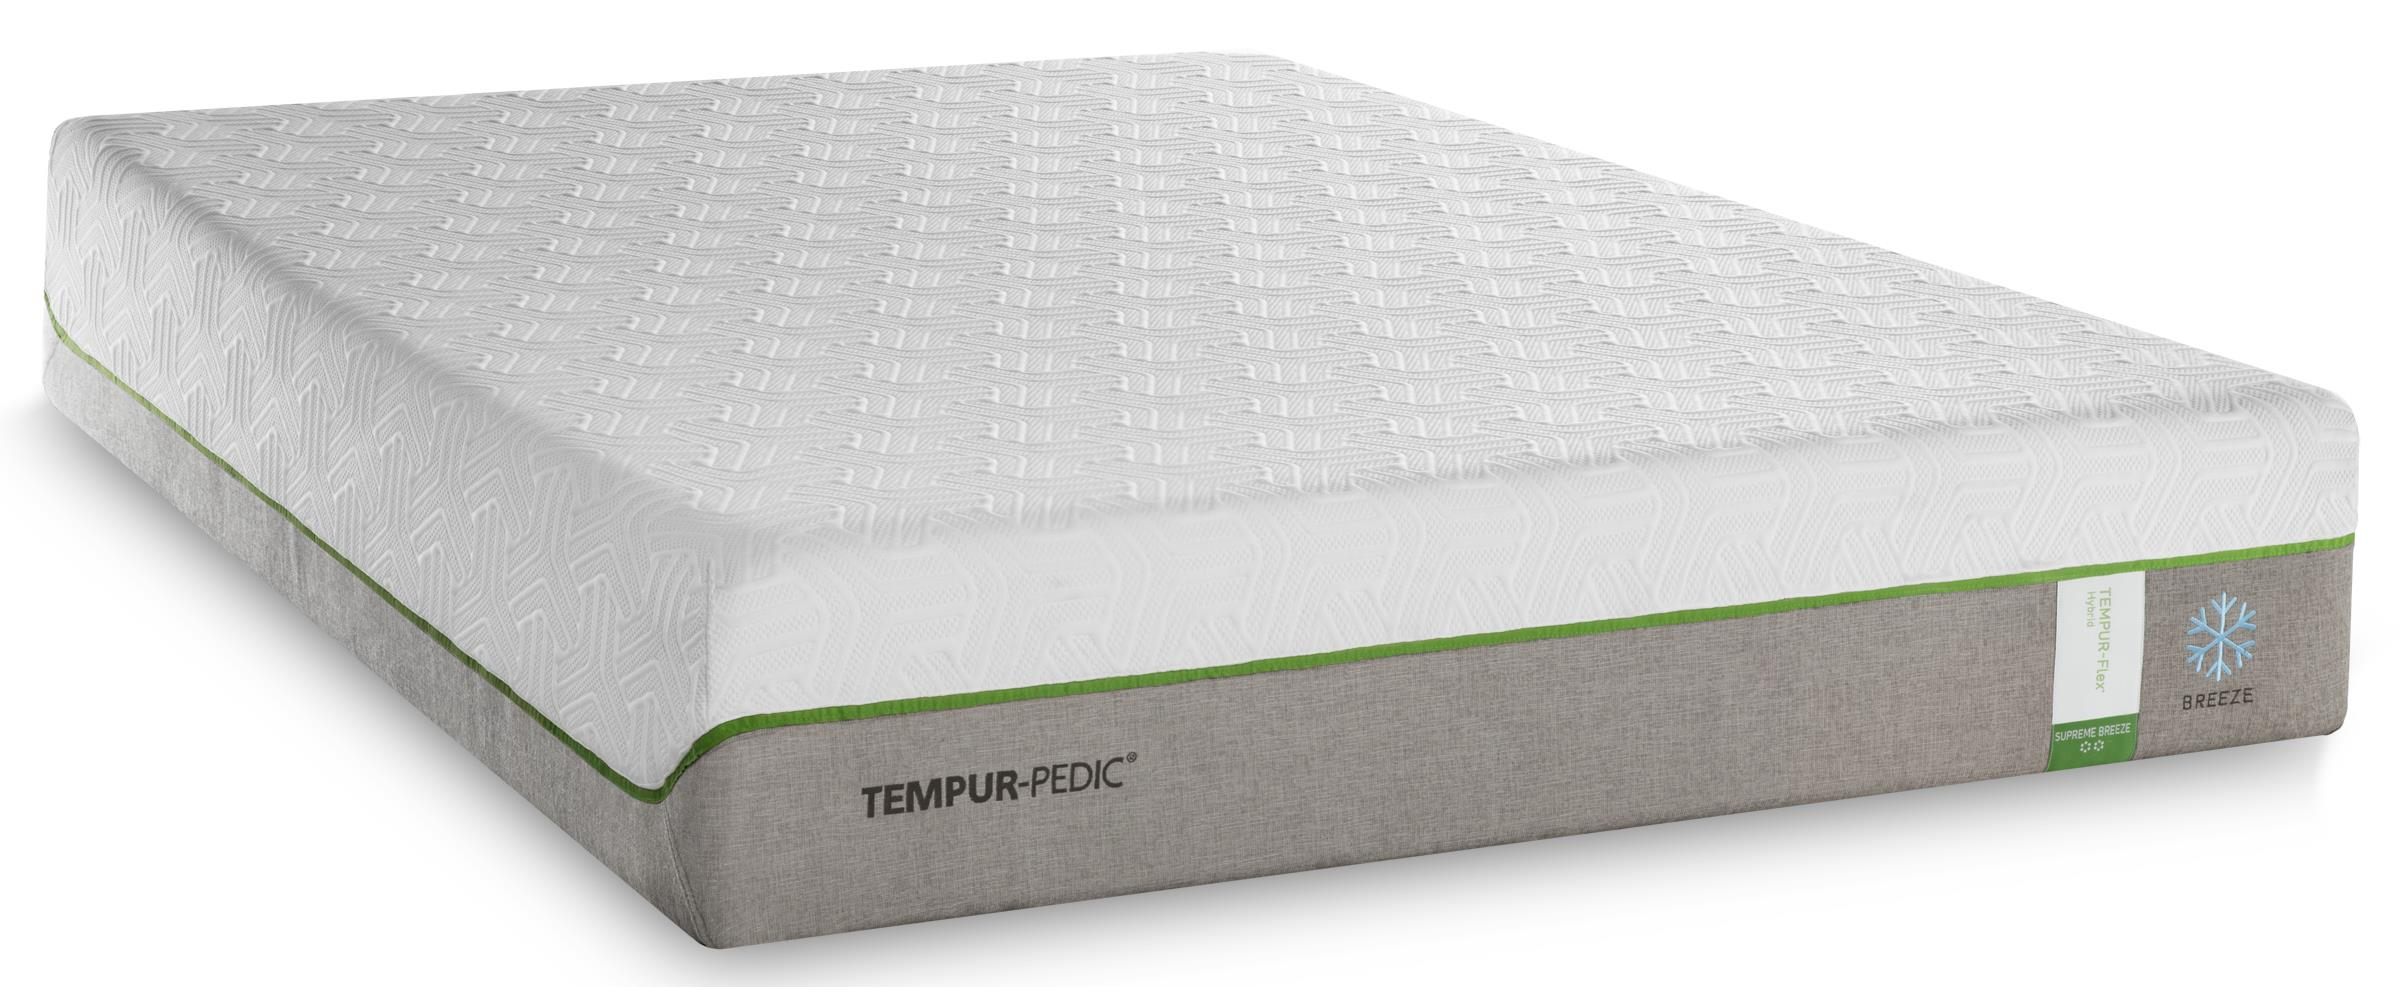 Tempur-Pedic® TEMPUR-Flex Supreme Breeze California King Medium Plush Mattress - Item Number: 10292280